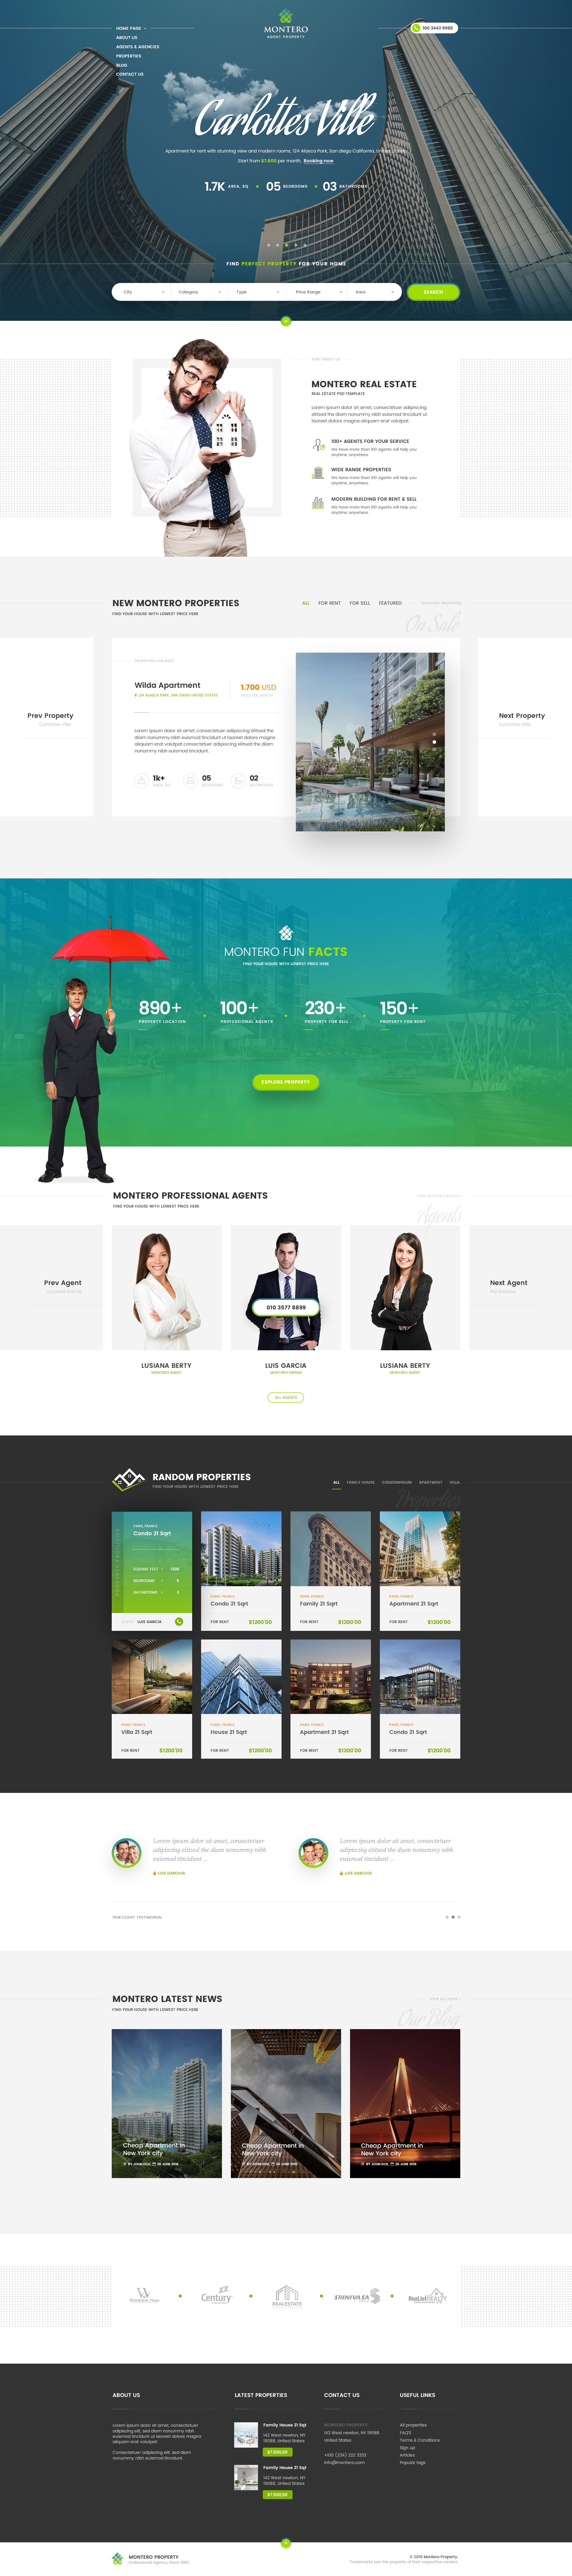 Montero Real Estate Property Psd Template By Youwes Themeforest